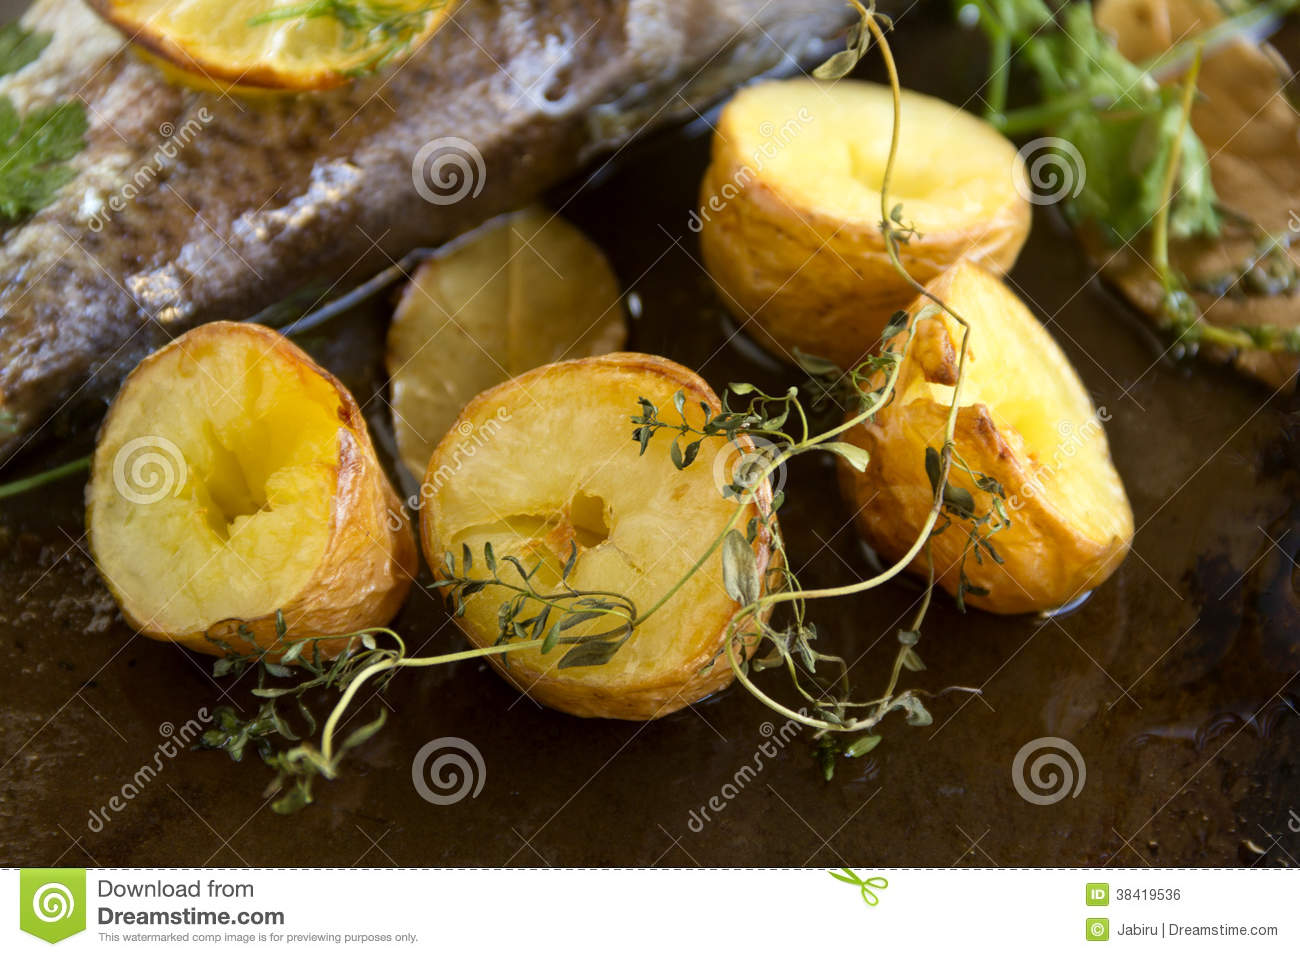 Baked Potatoes And Thyme Royalty Free Stock Image - Image: 38419536